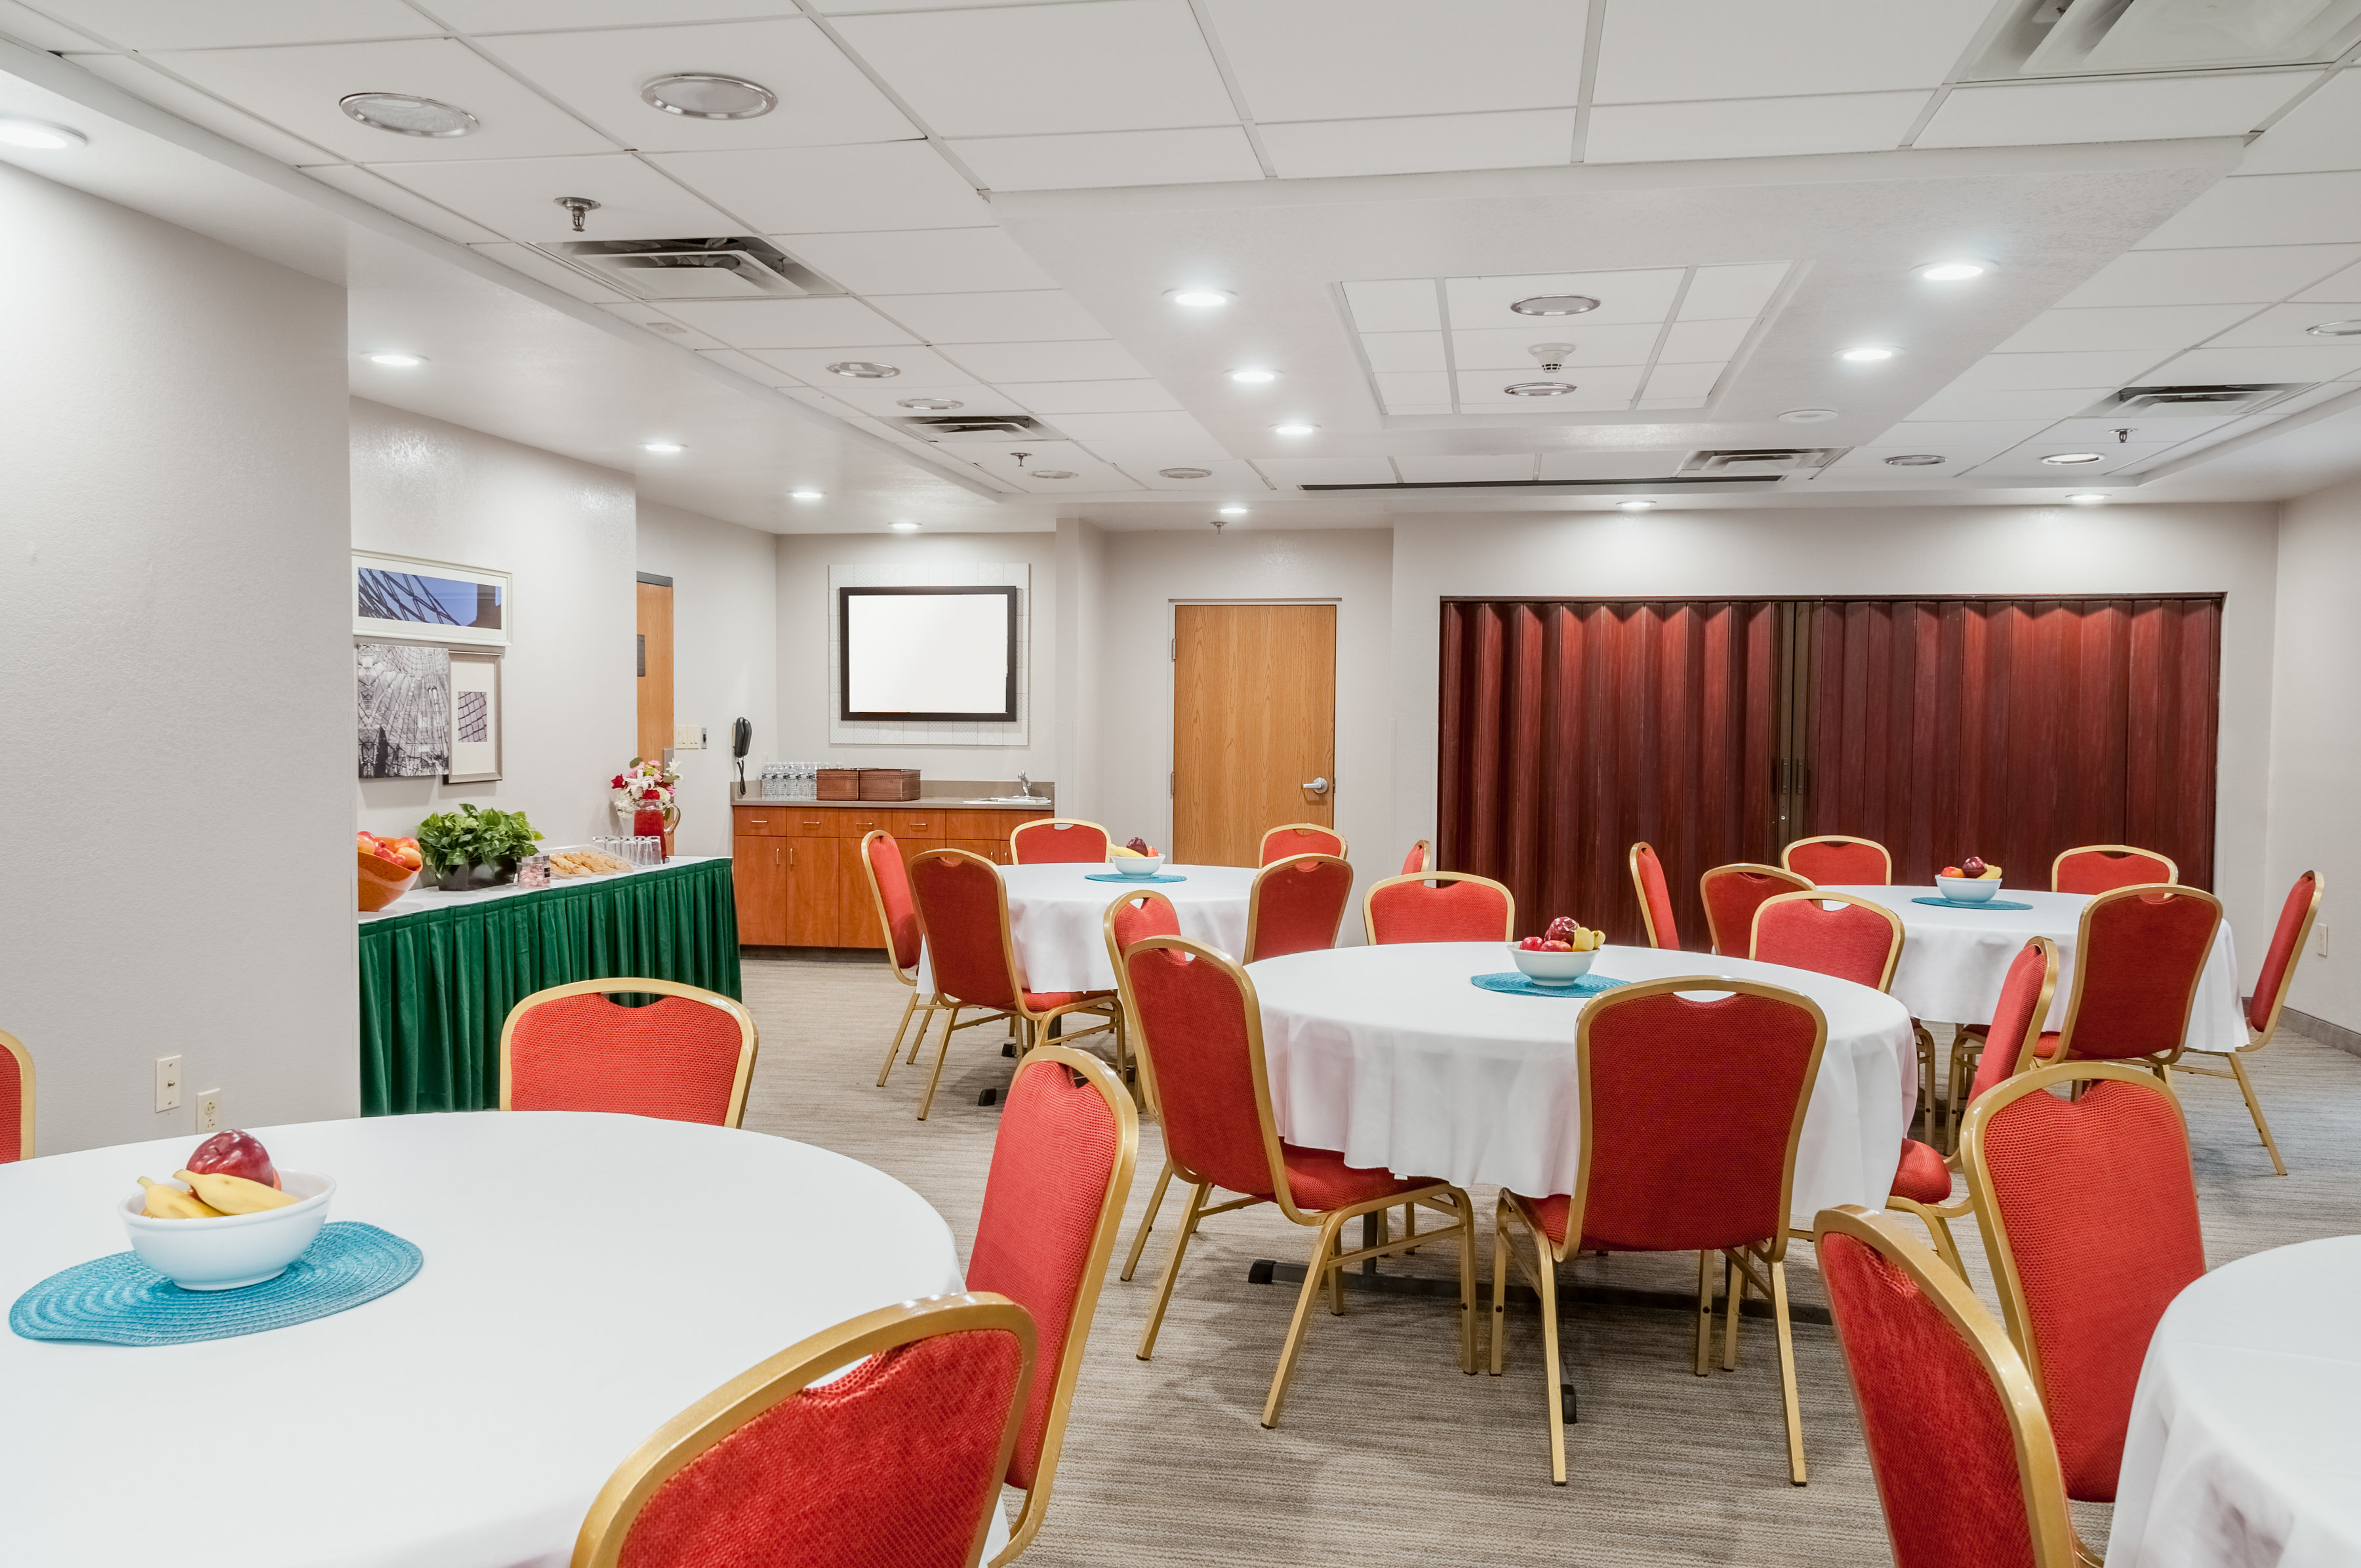 Country Inn & Suites by Radisson, Cookeville, TN image 0